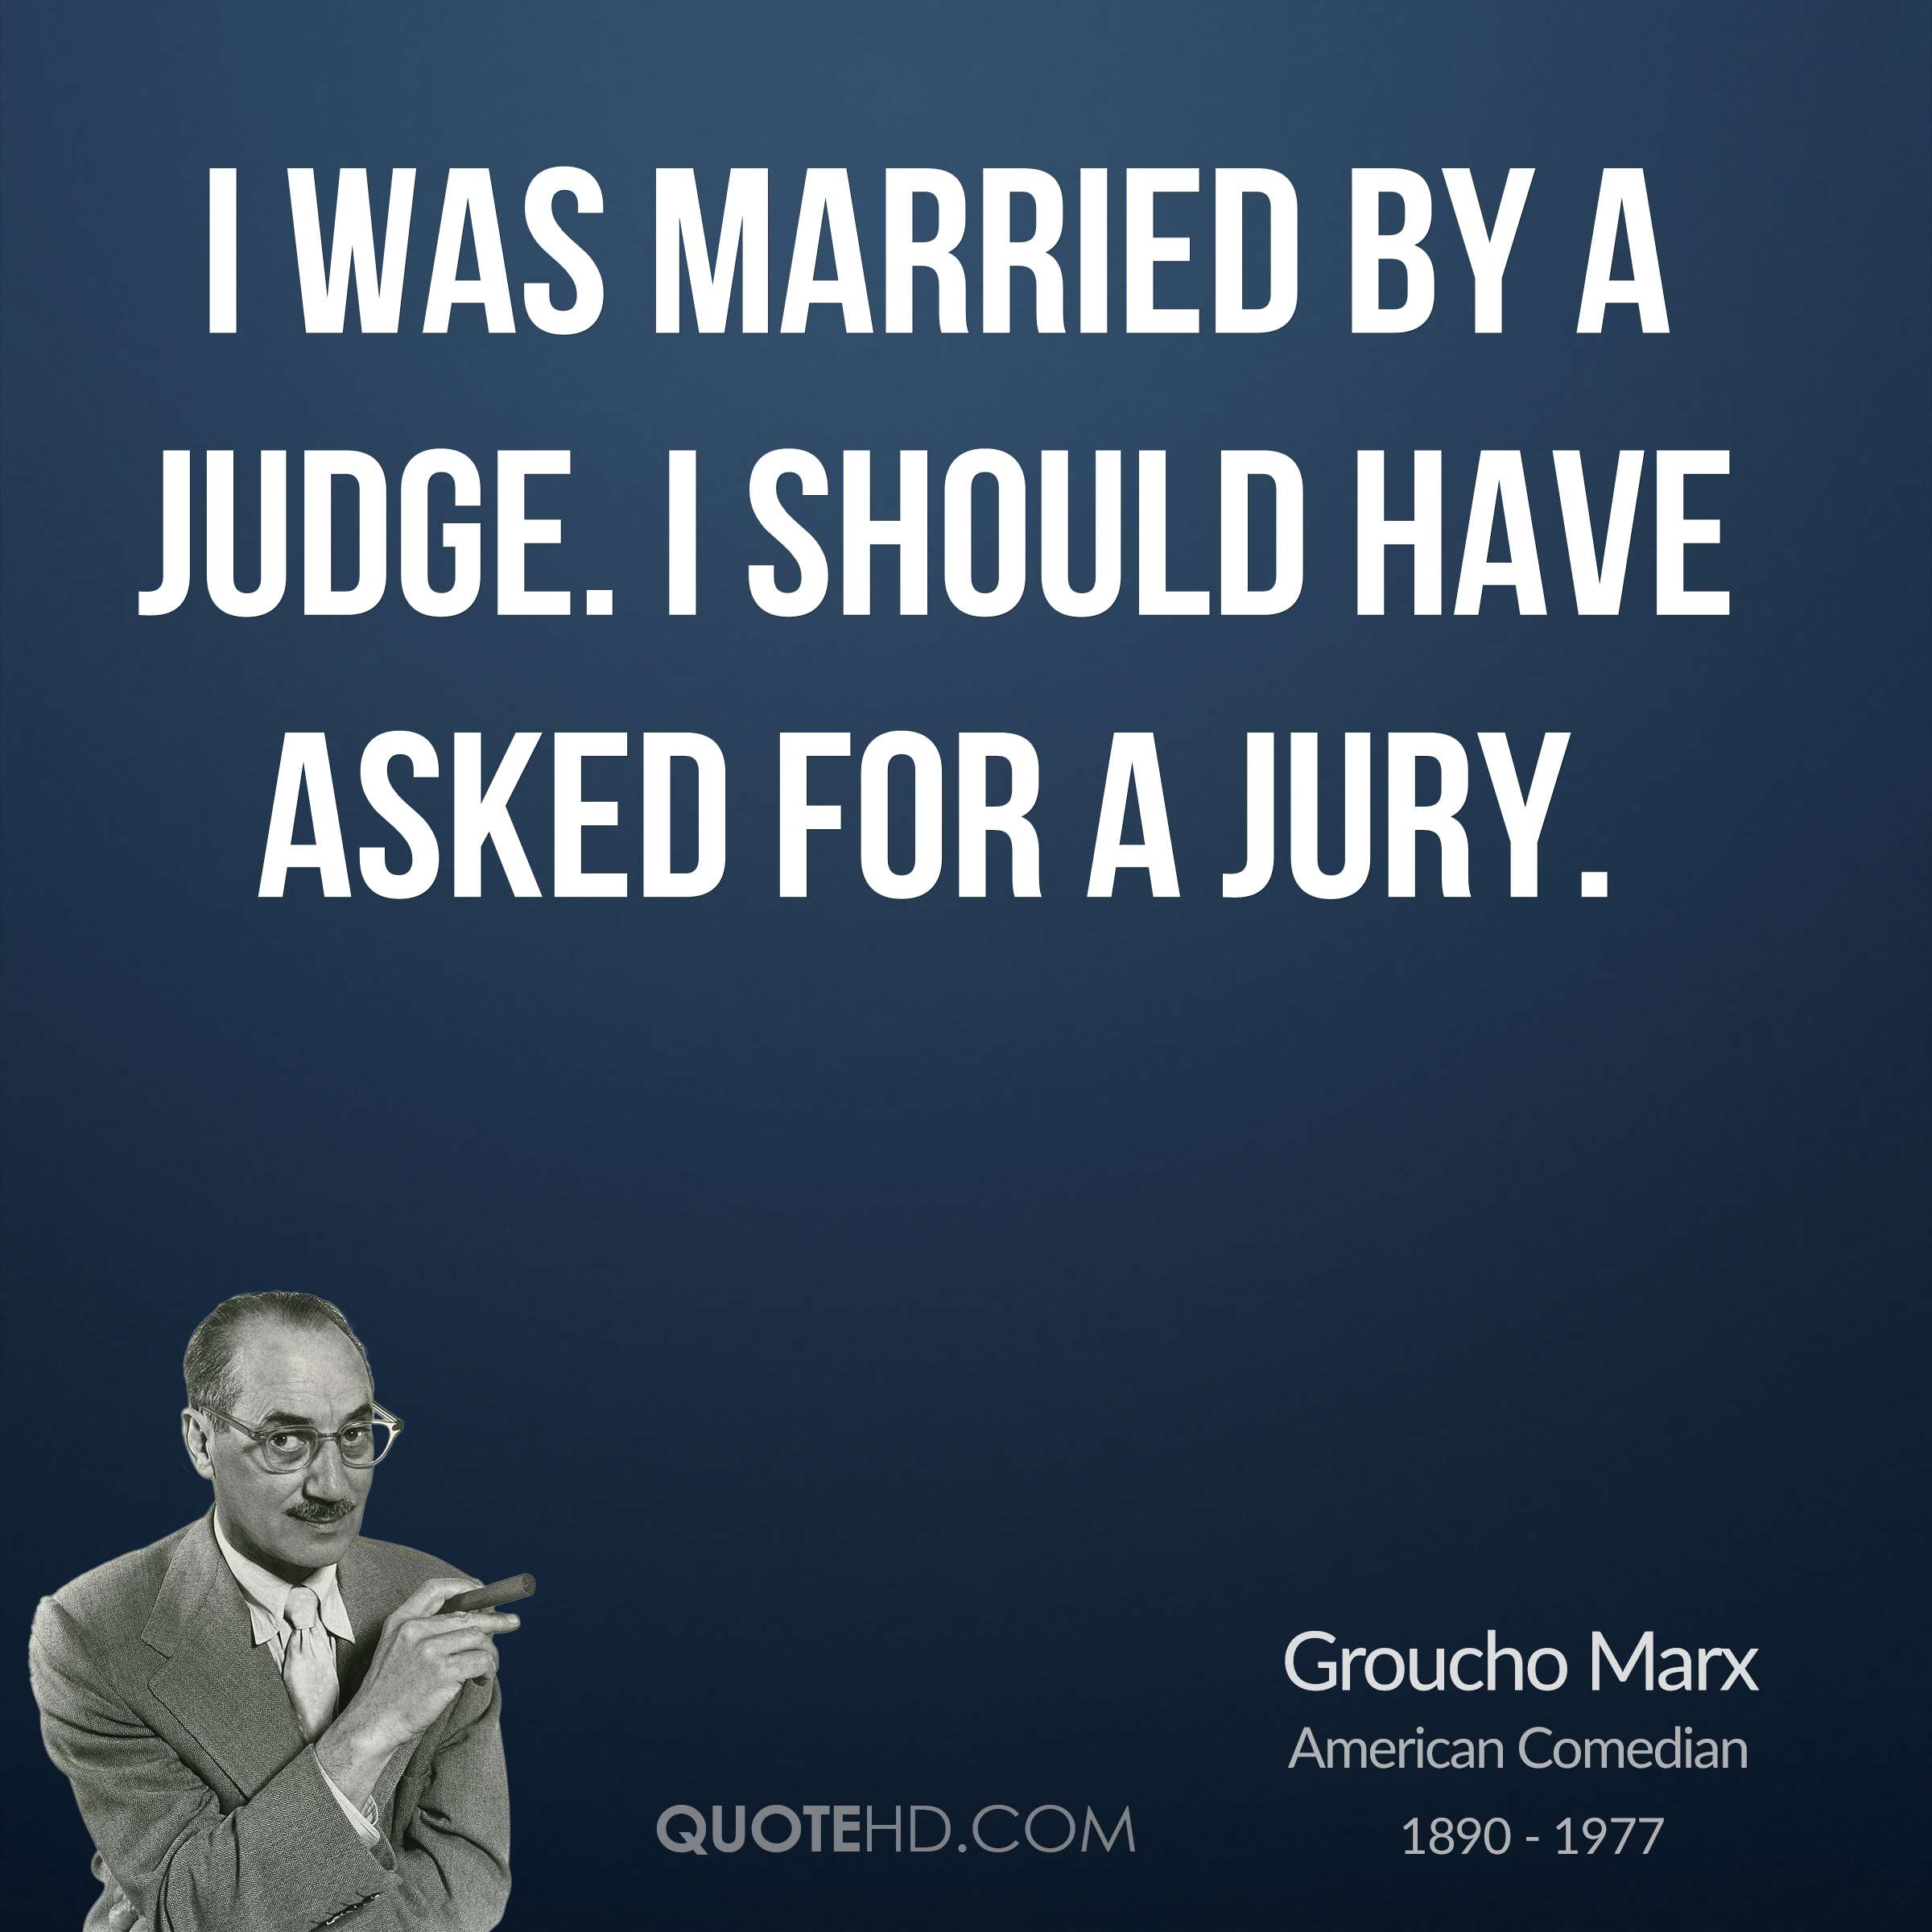 I was married by a judge. I should have asked for a jury.